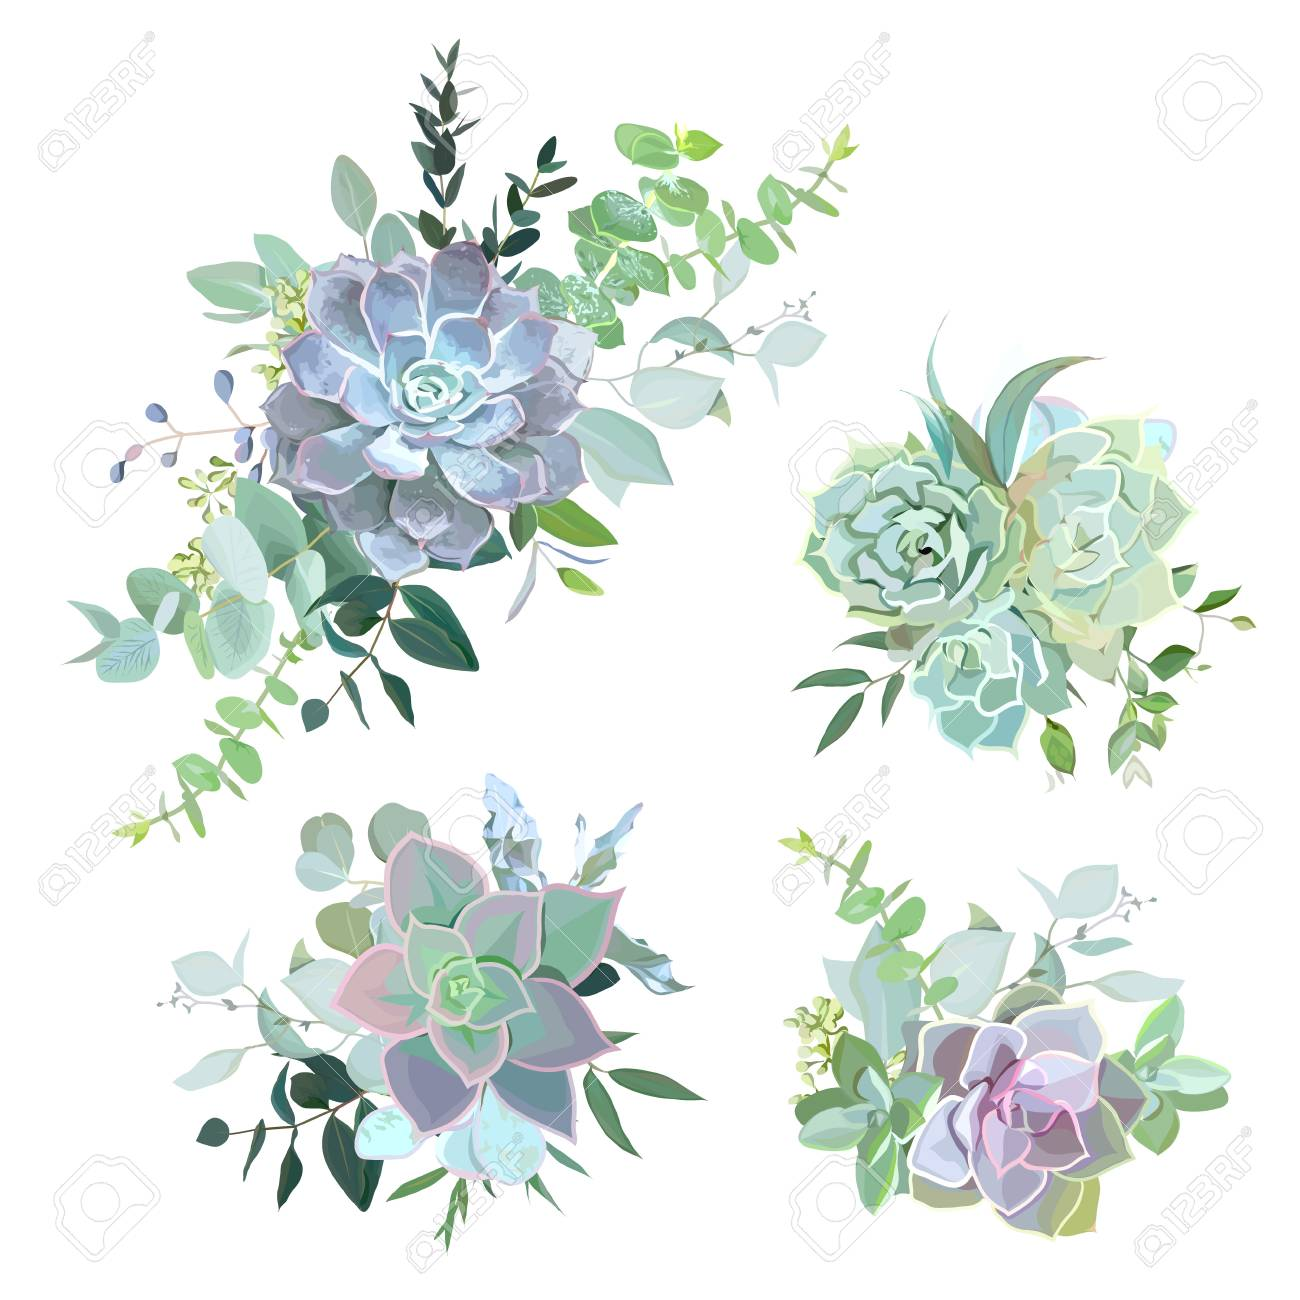 Green Colorful Succulent Bouquets Vector Design Objects Stock Photo Picture And Royalty Free Image Image 90593012